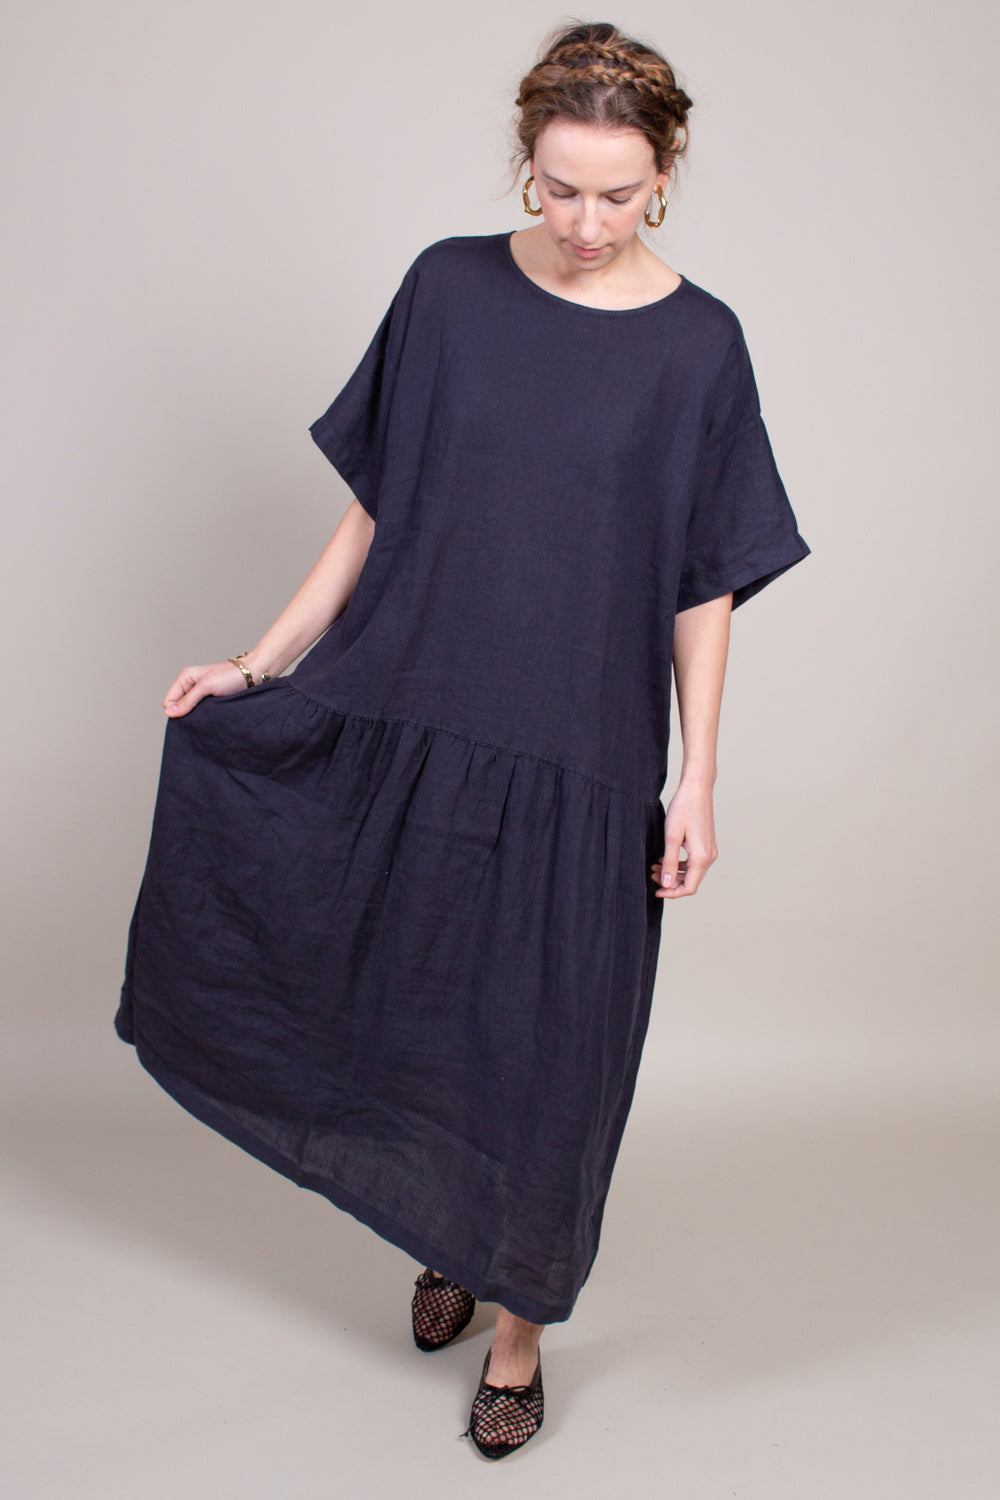 Easy Tee Dress in Black